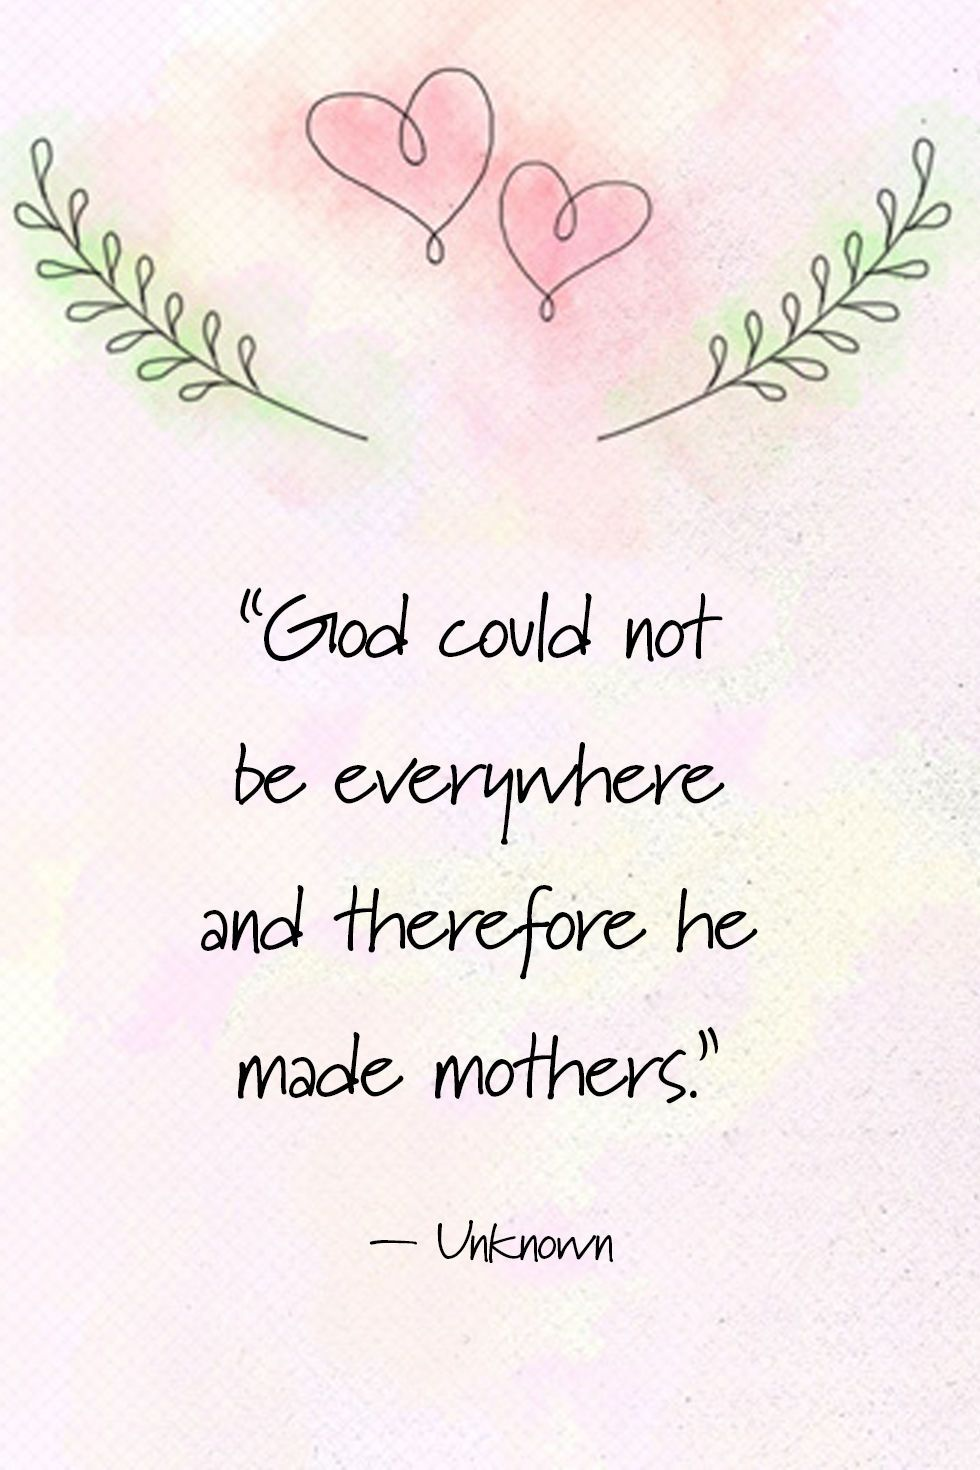 Inspirational Quotes For Mothers 15 Quotes Every Mother Should Read  Poem Inspirational And Sweet